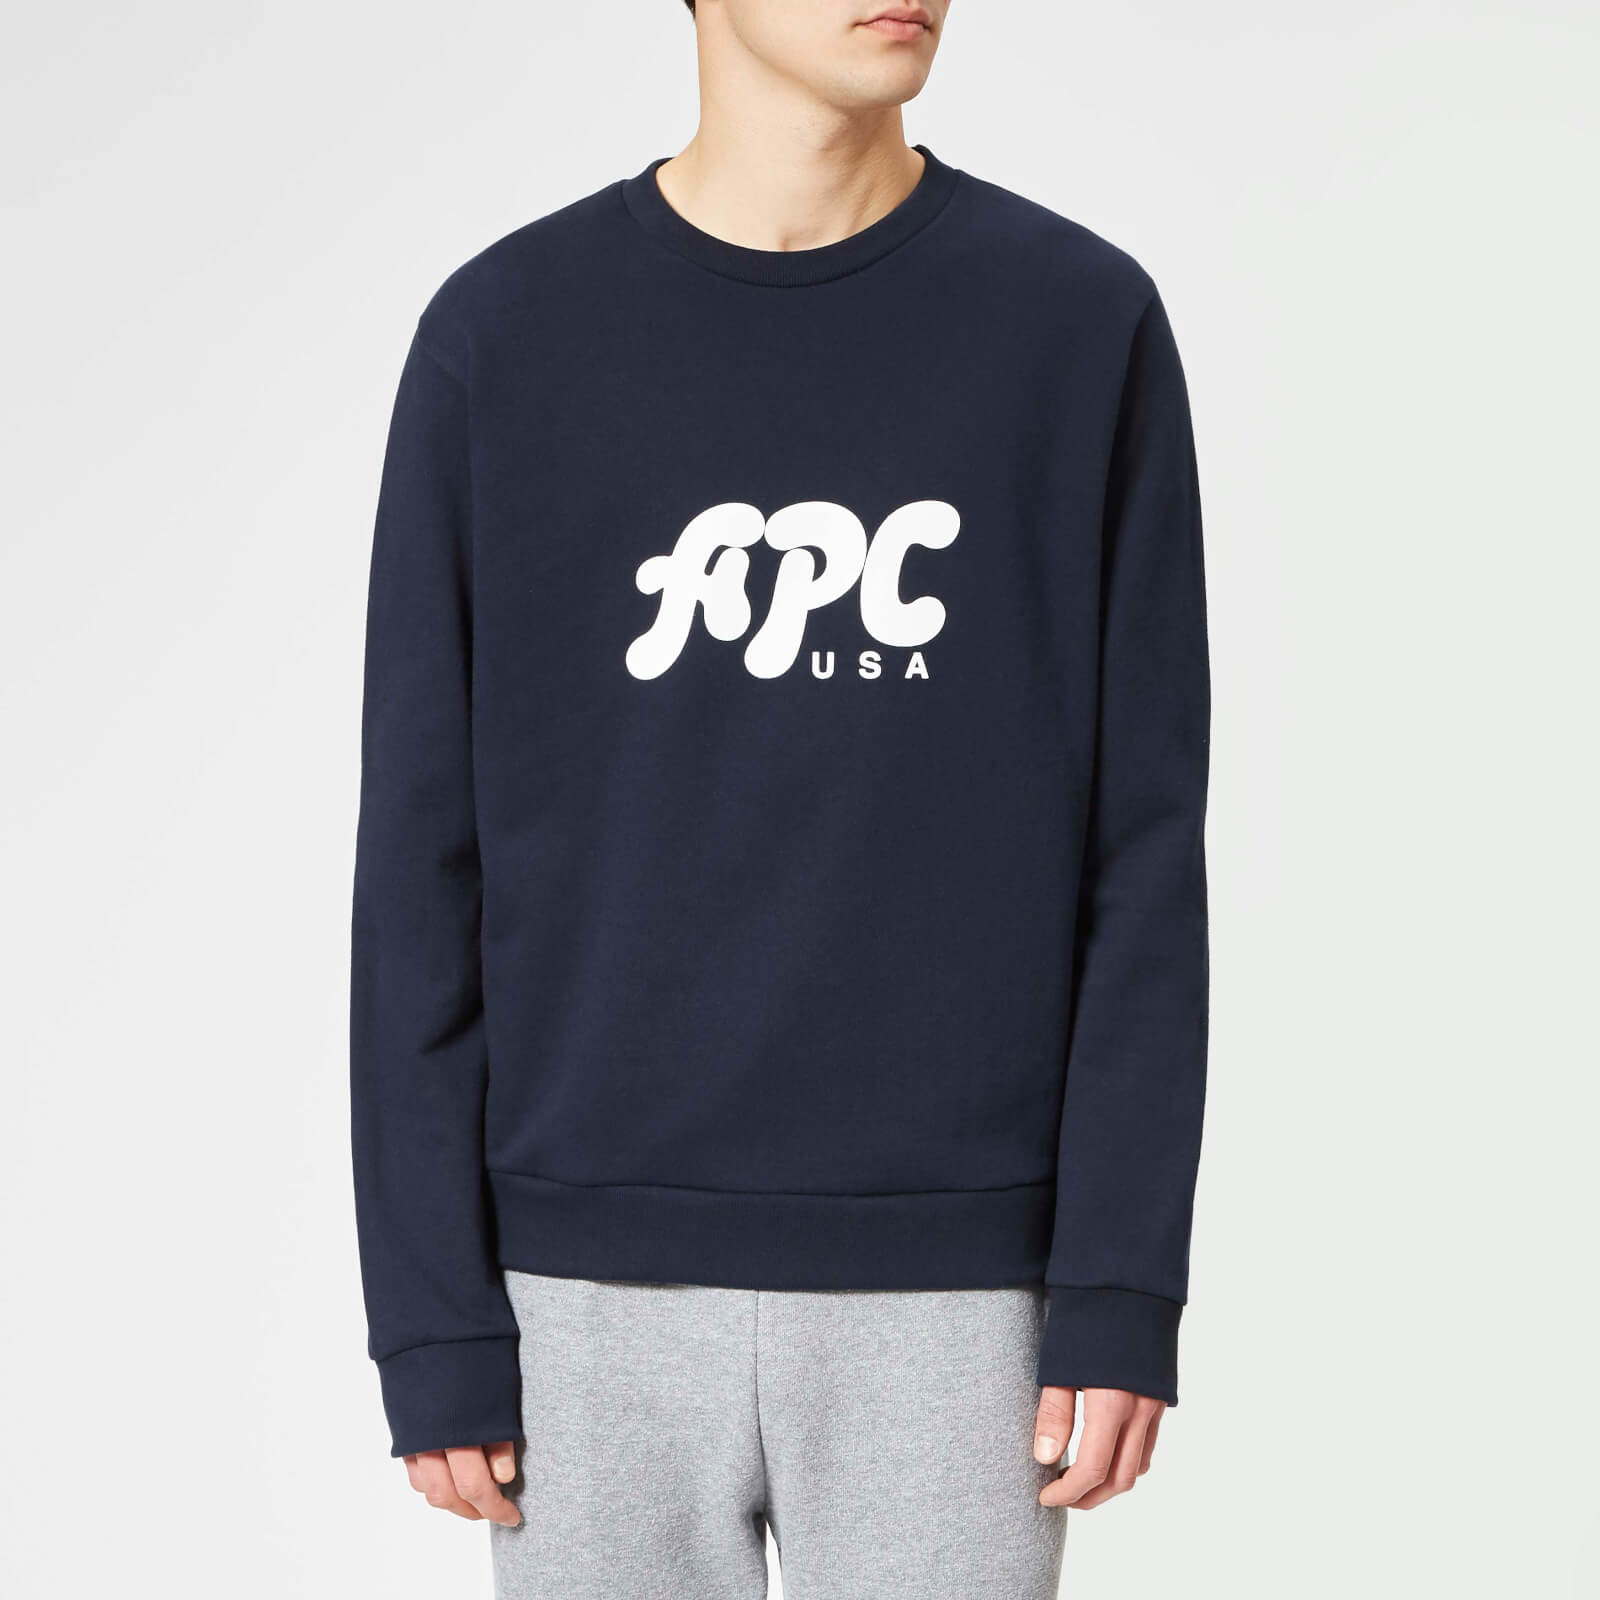 £50 A Over cMen's Dark Free Gabe p Sweat Delivery Uk Navy QCxBrWdeo